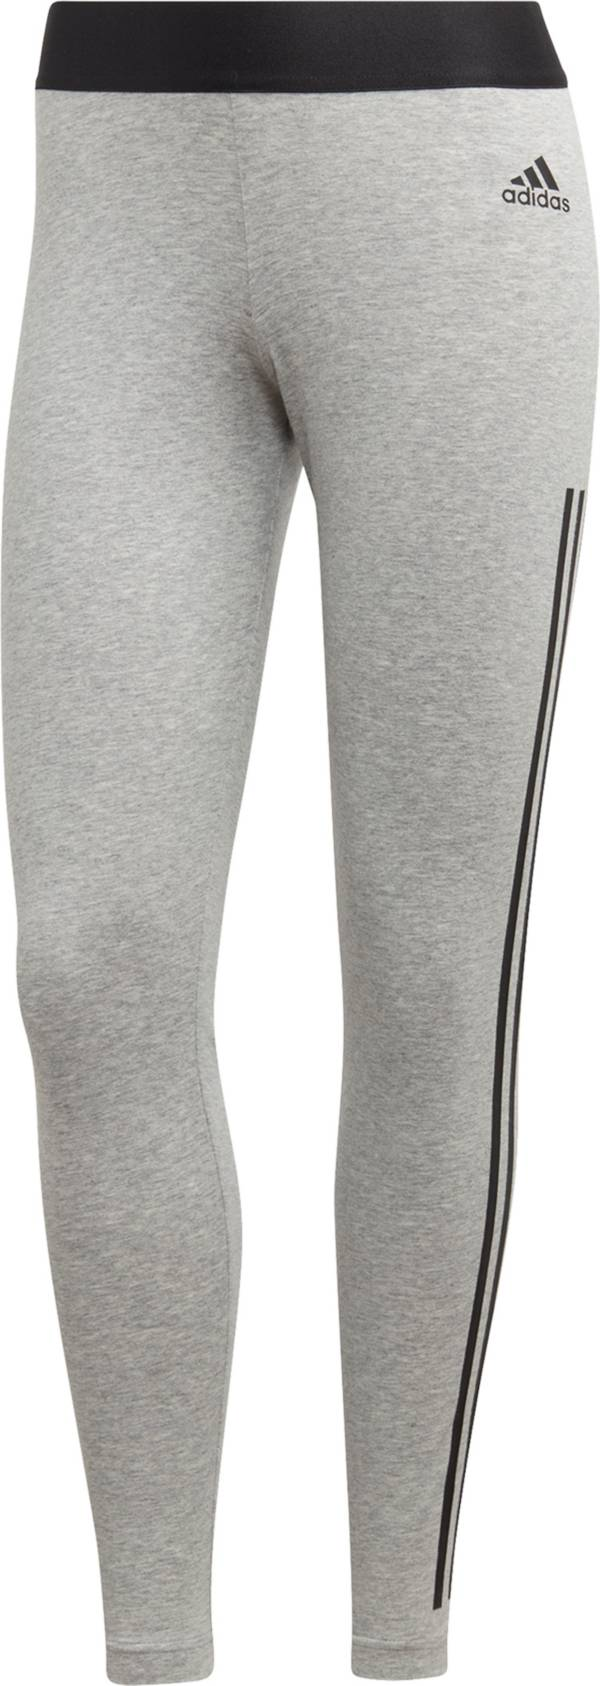 adidas Women's Must Haves 3-Stripes Tights product image